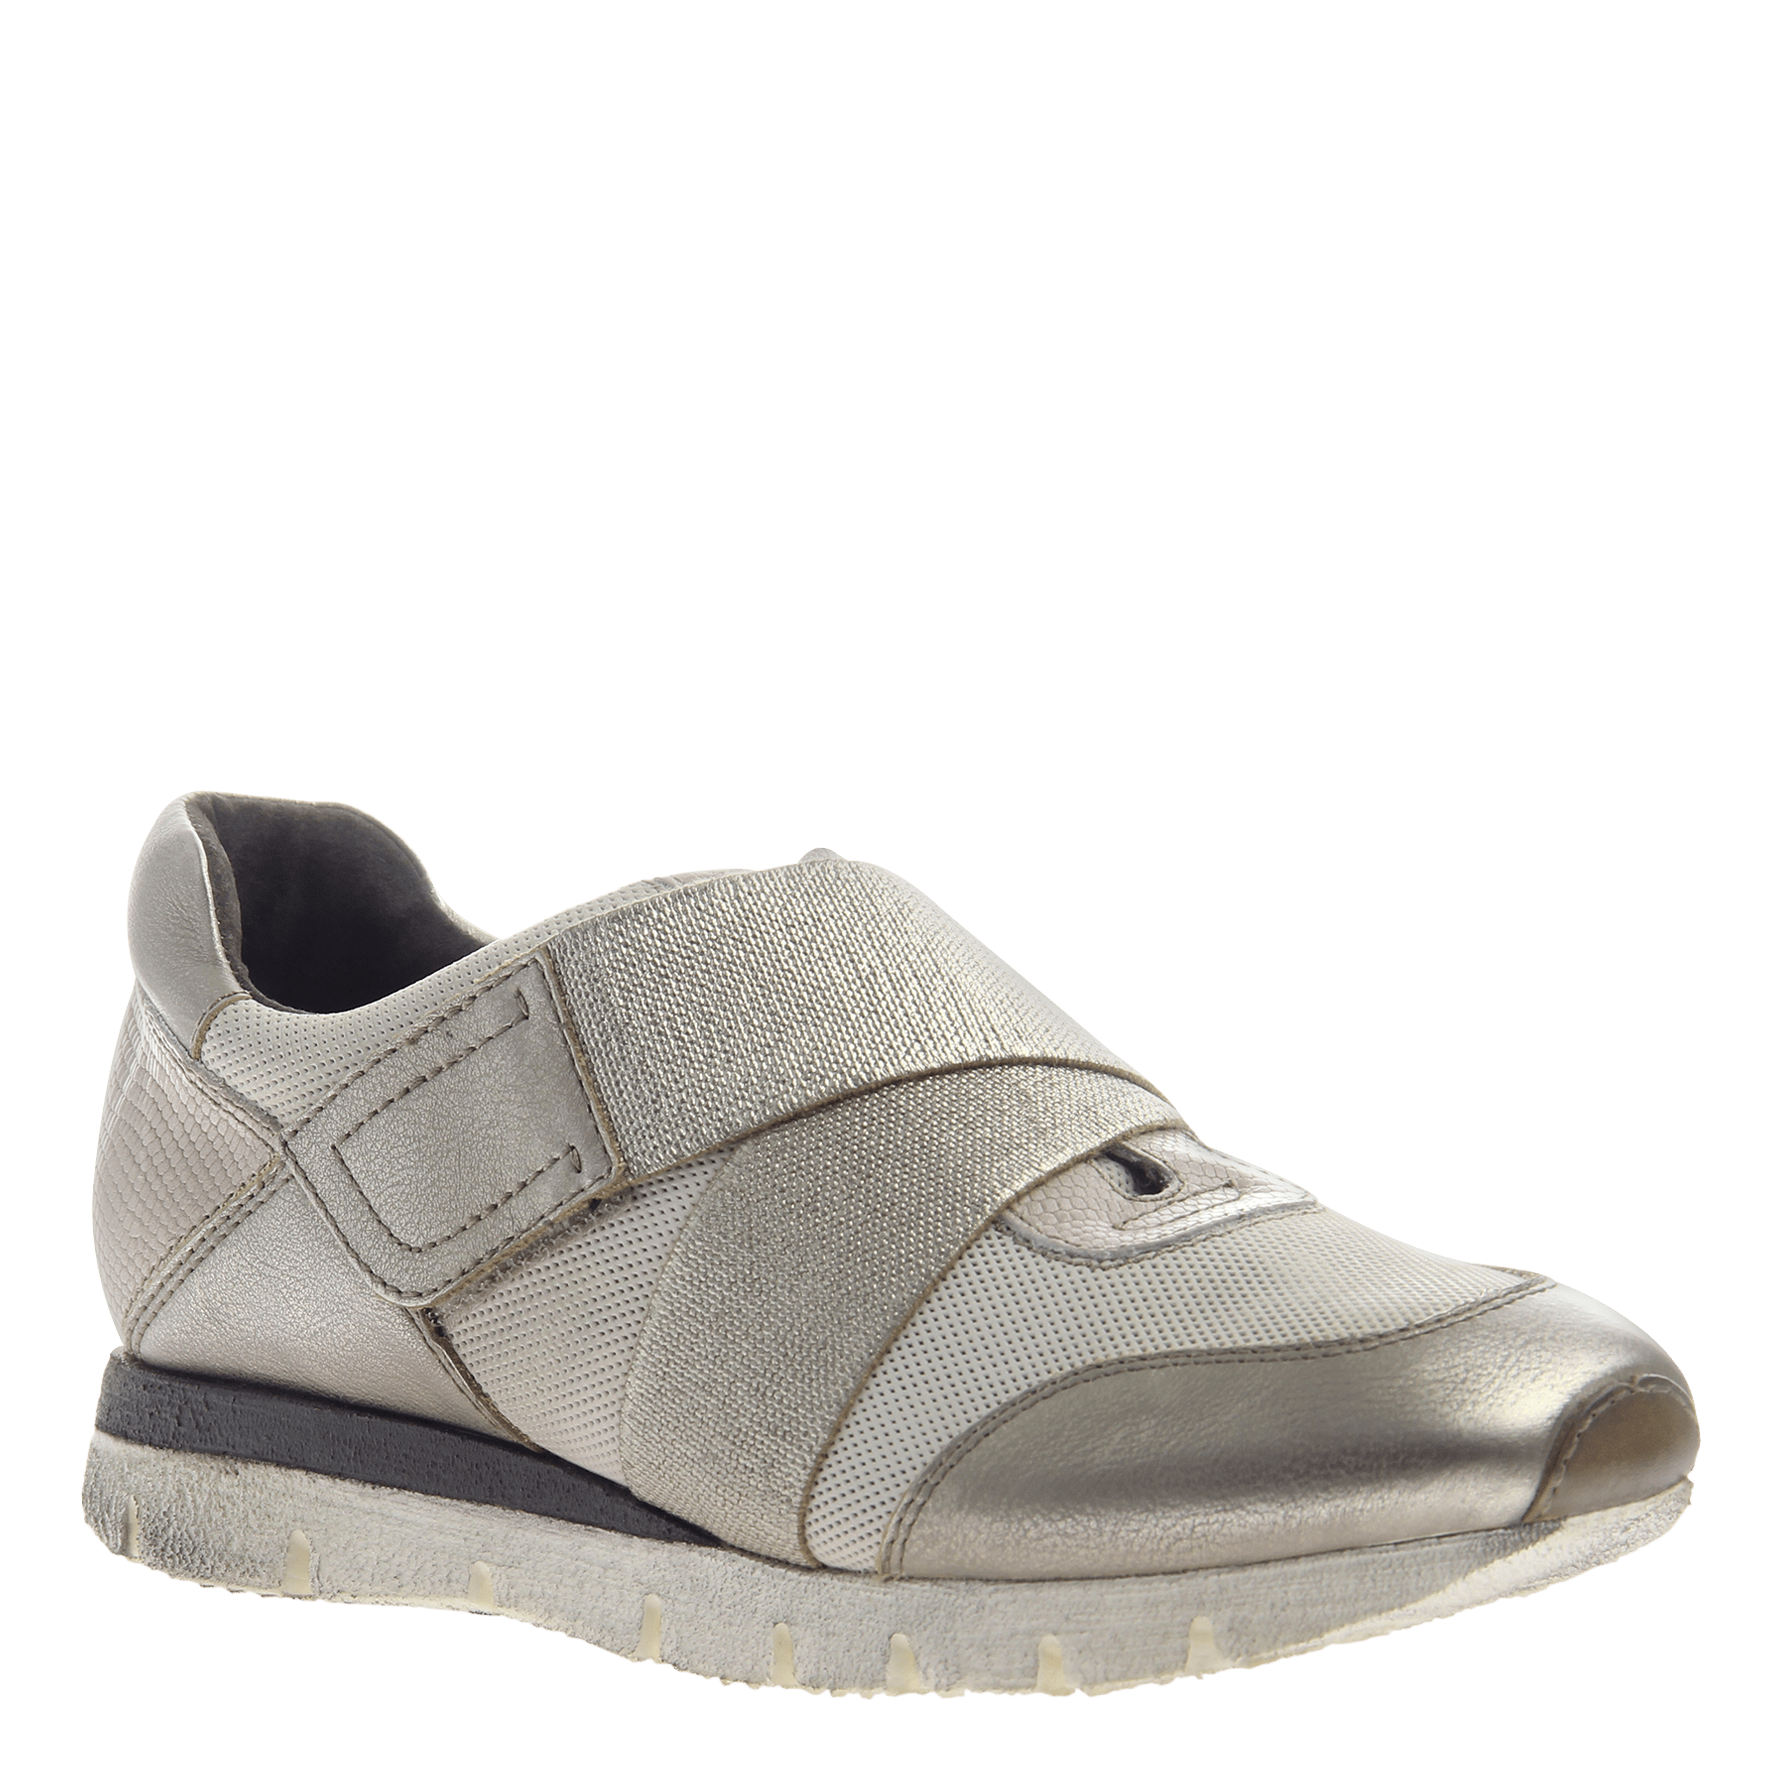 New Wave Women's sneaker in Light Pewter